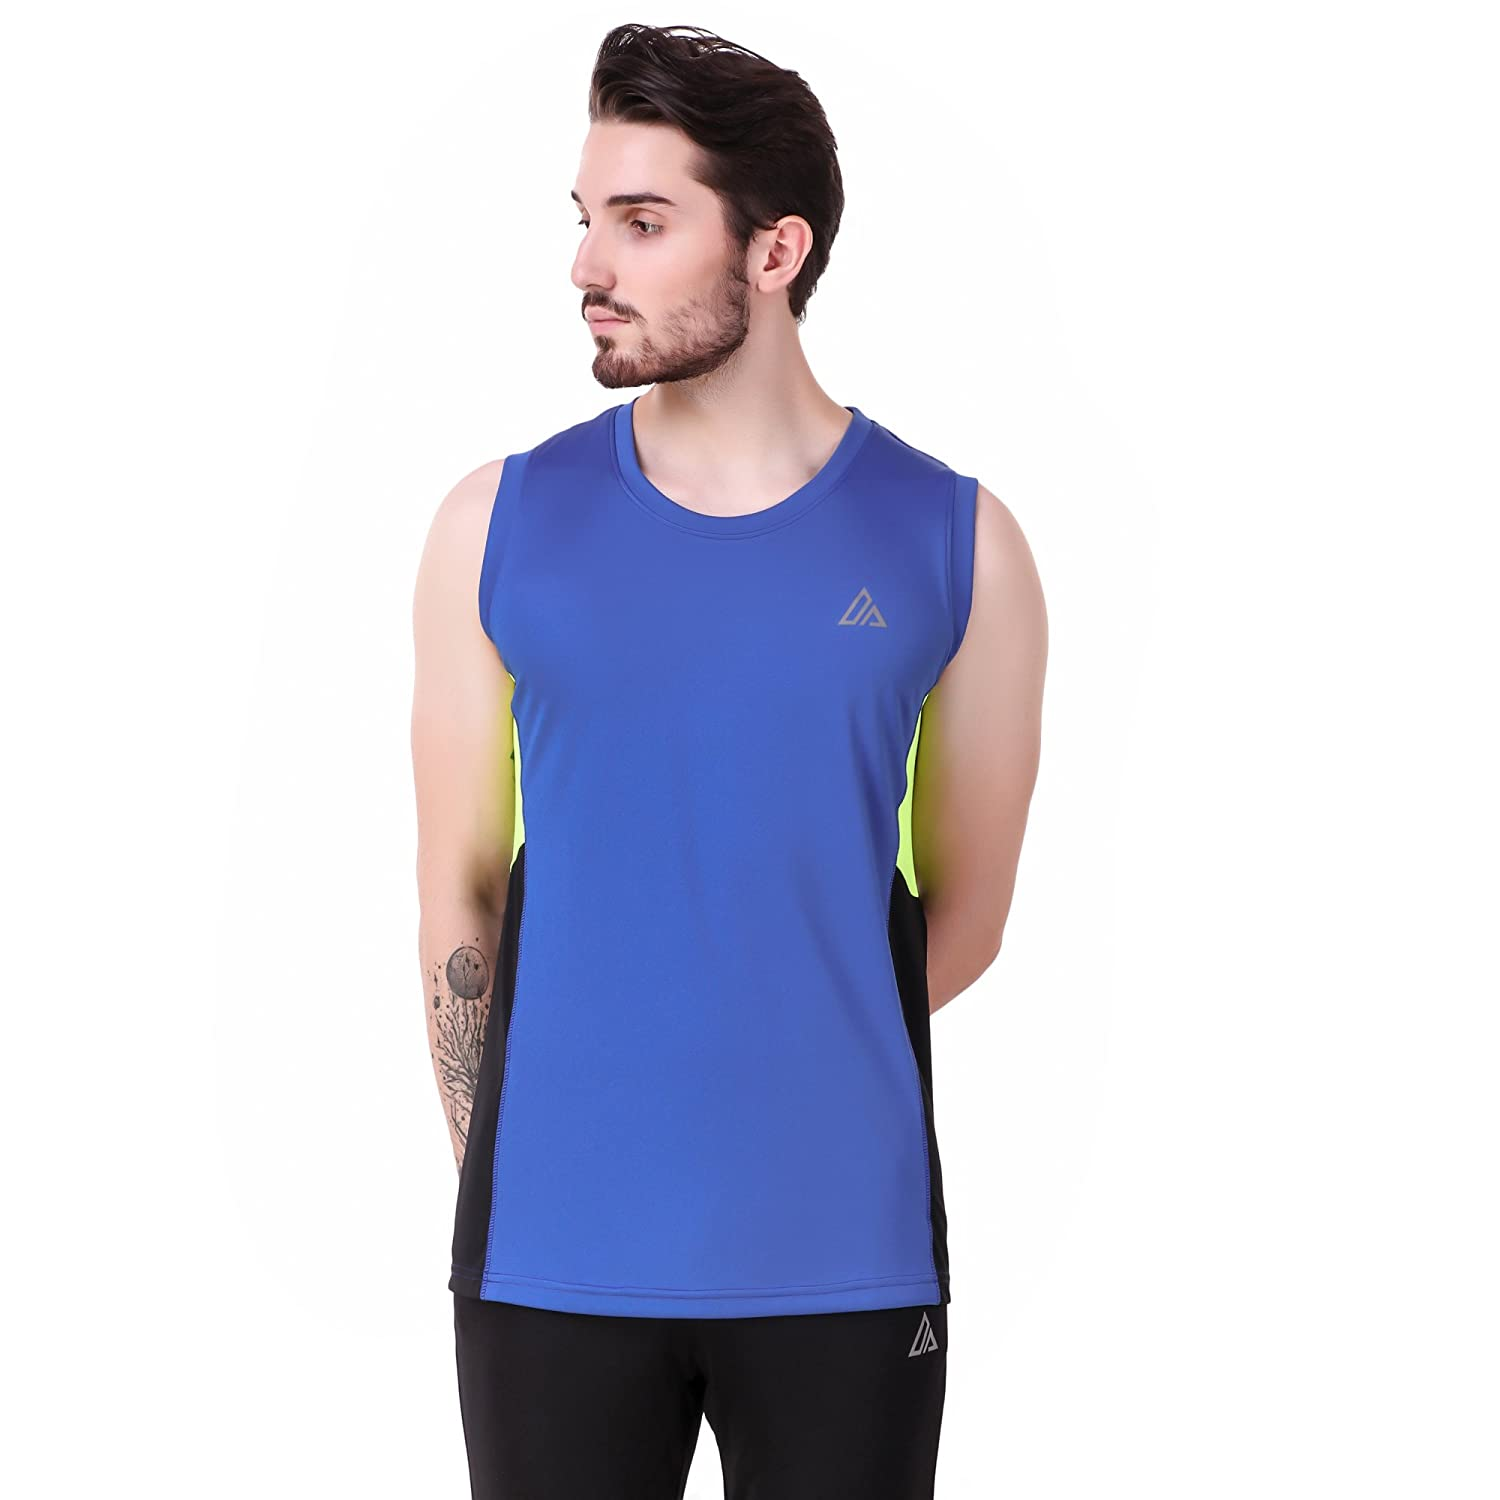 e675adc3f Delta Sports T-Shirt SL Men Sleeveless Round Neck Blue Colour Sports T-Shirt   Amazon.in  Clothing   Accessories